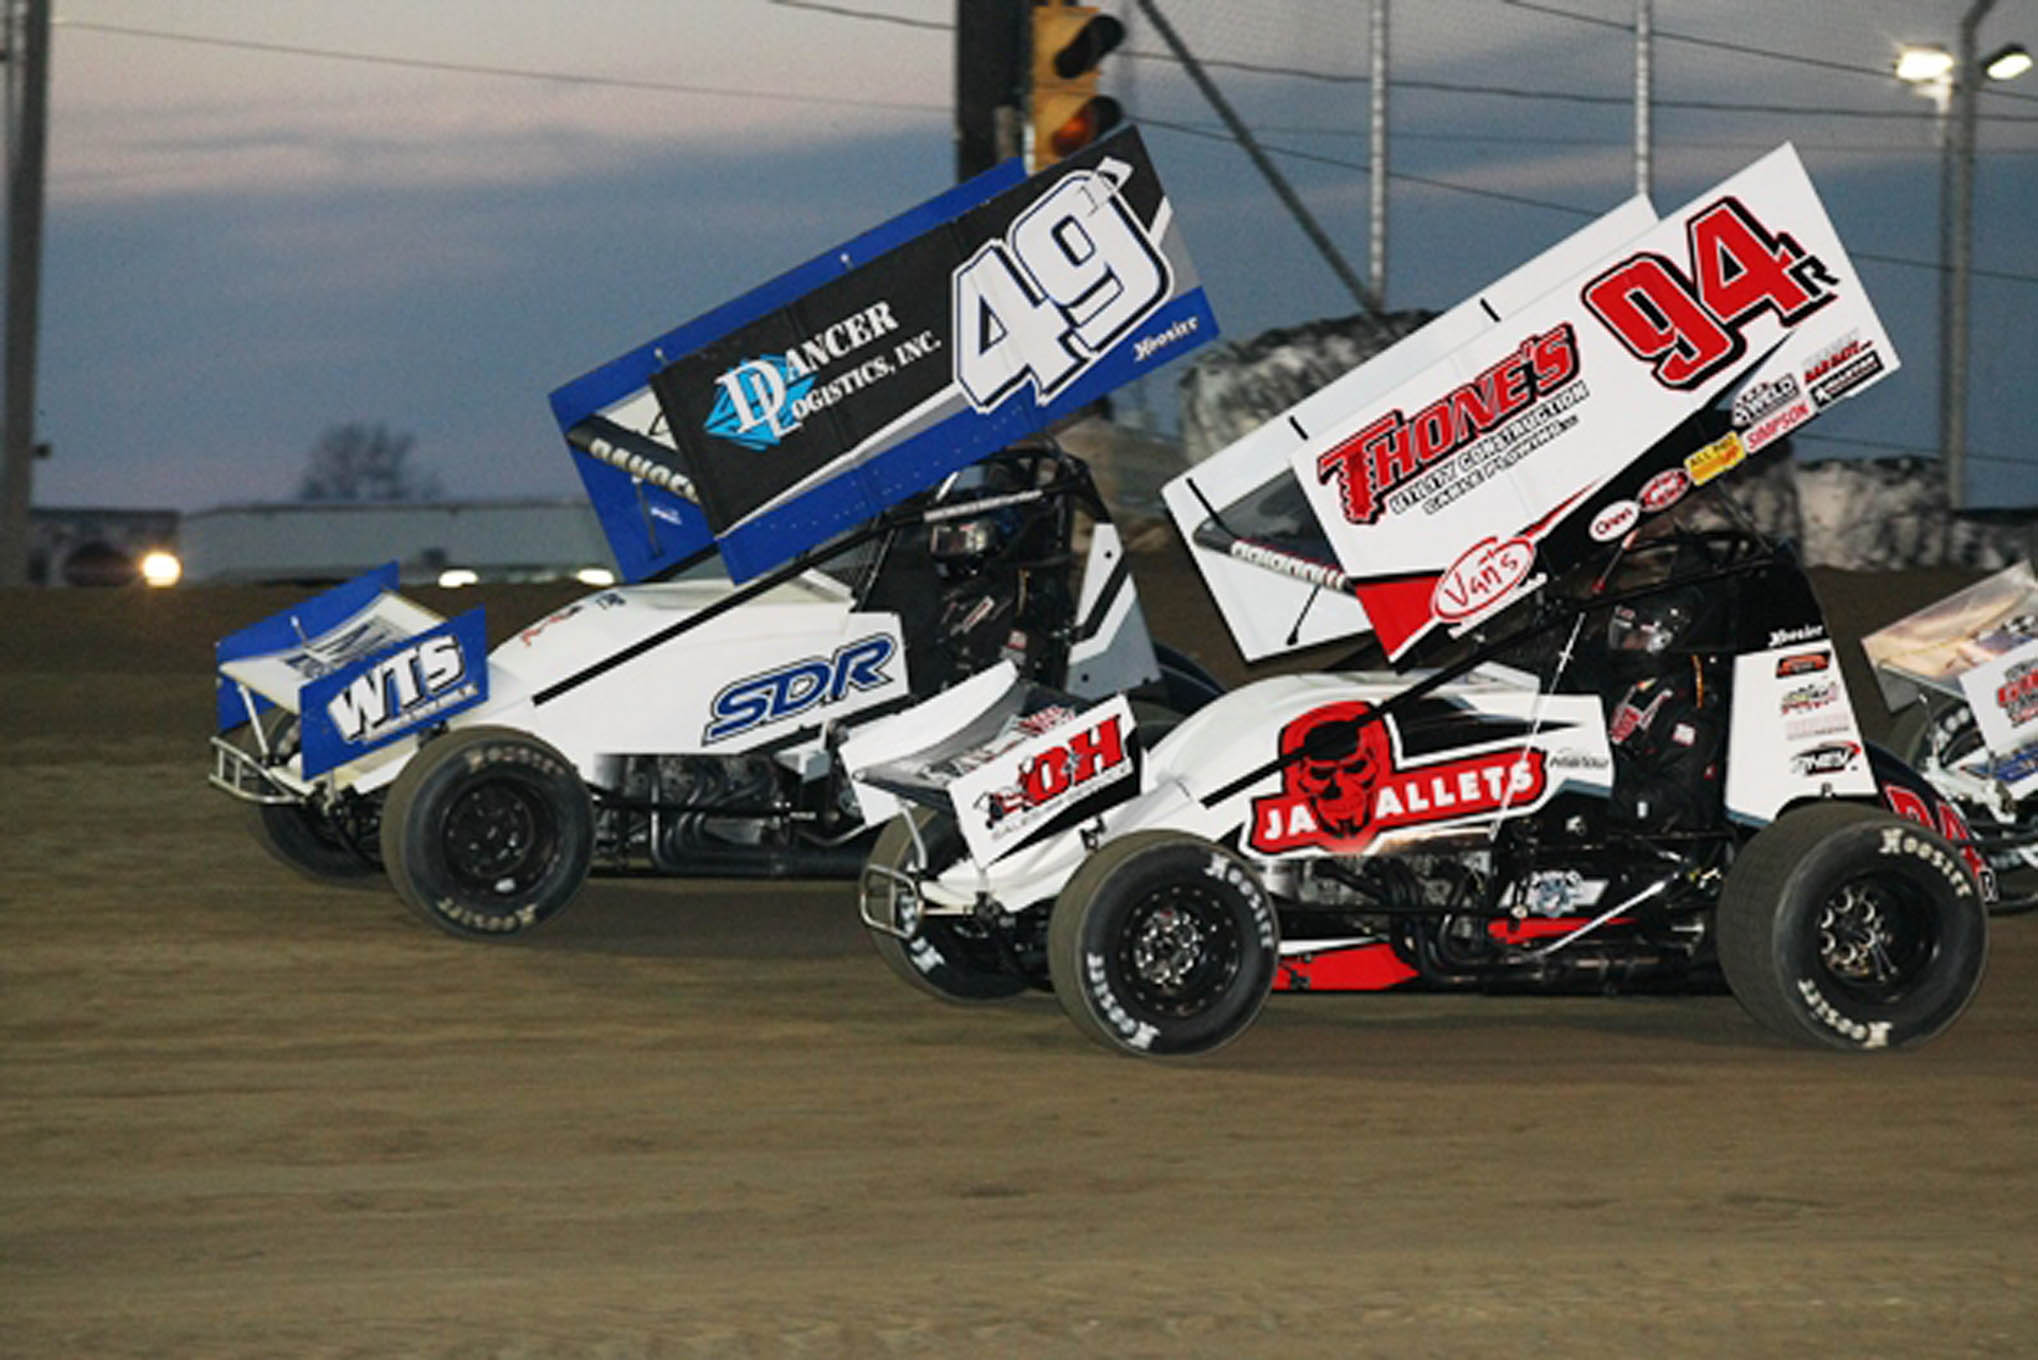 Pribnow and Shawn Dancer (49) went on to transfer spots from the B Main.